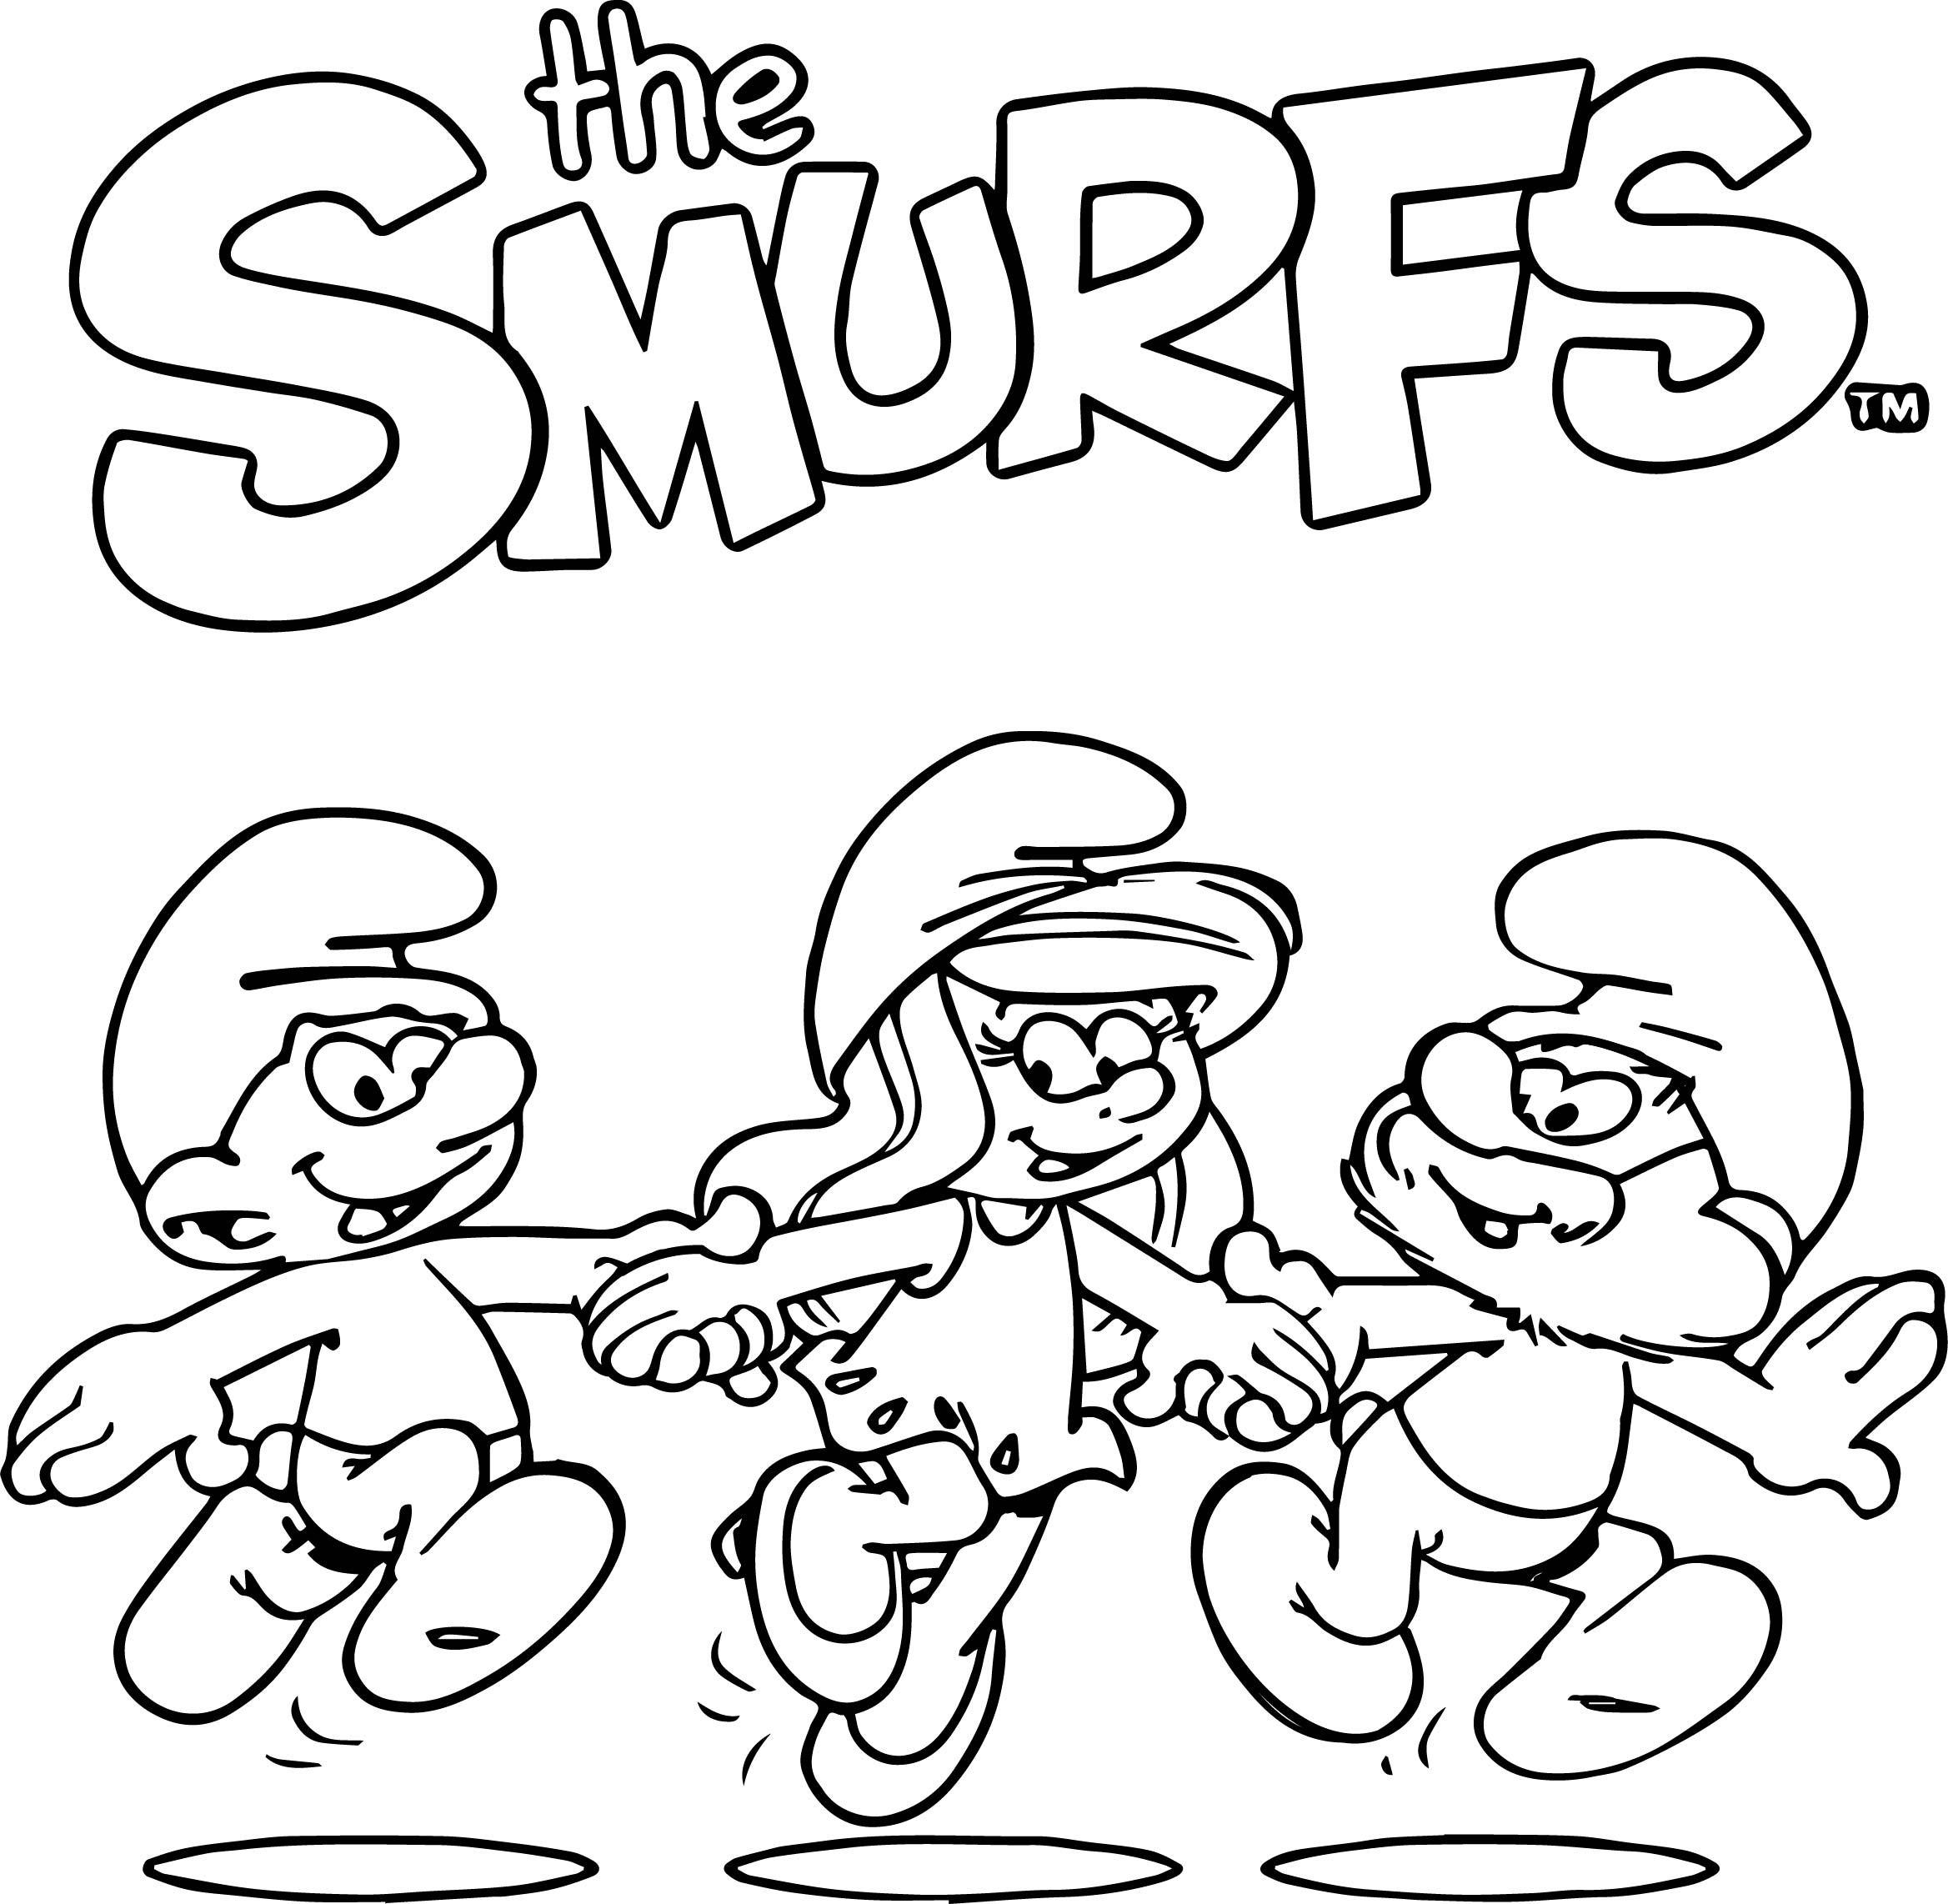 smurfs coloring pages free printable smurf coloring pages for kids pages smurfs coloring